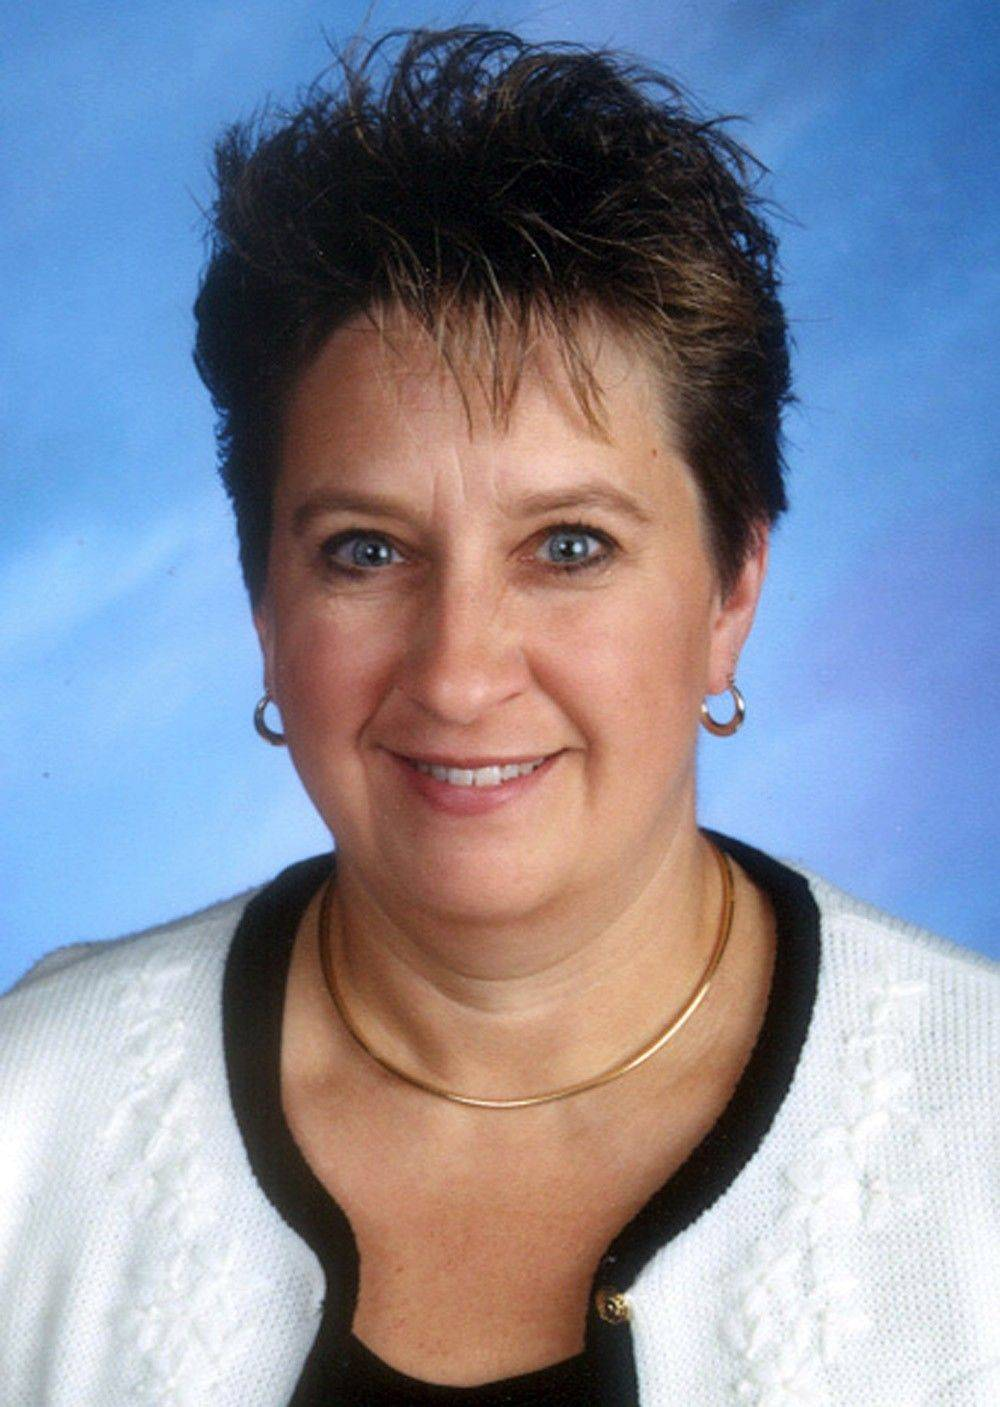 Island Lake Mayor Debbie Herrmann